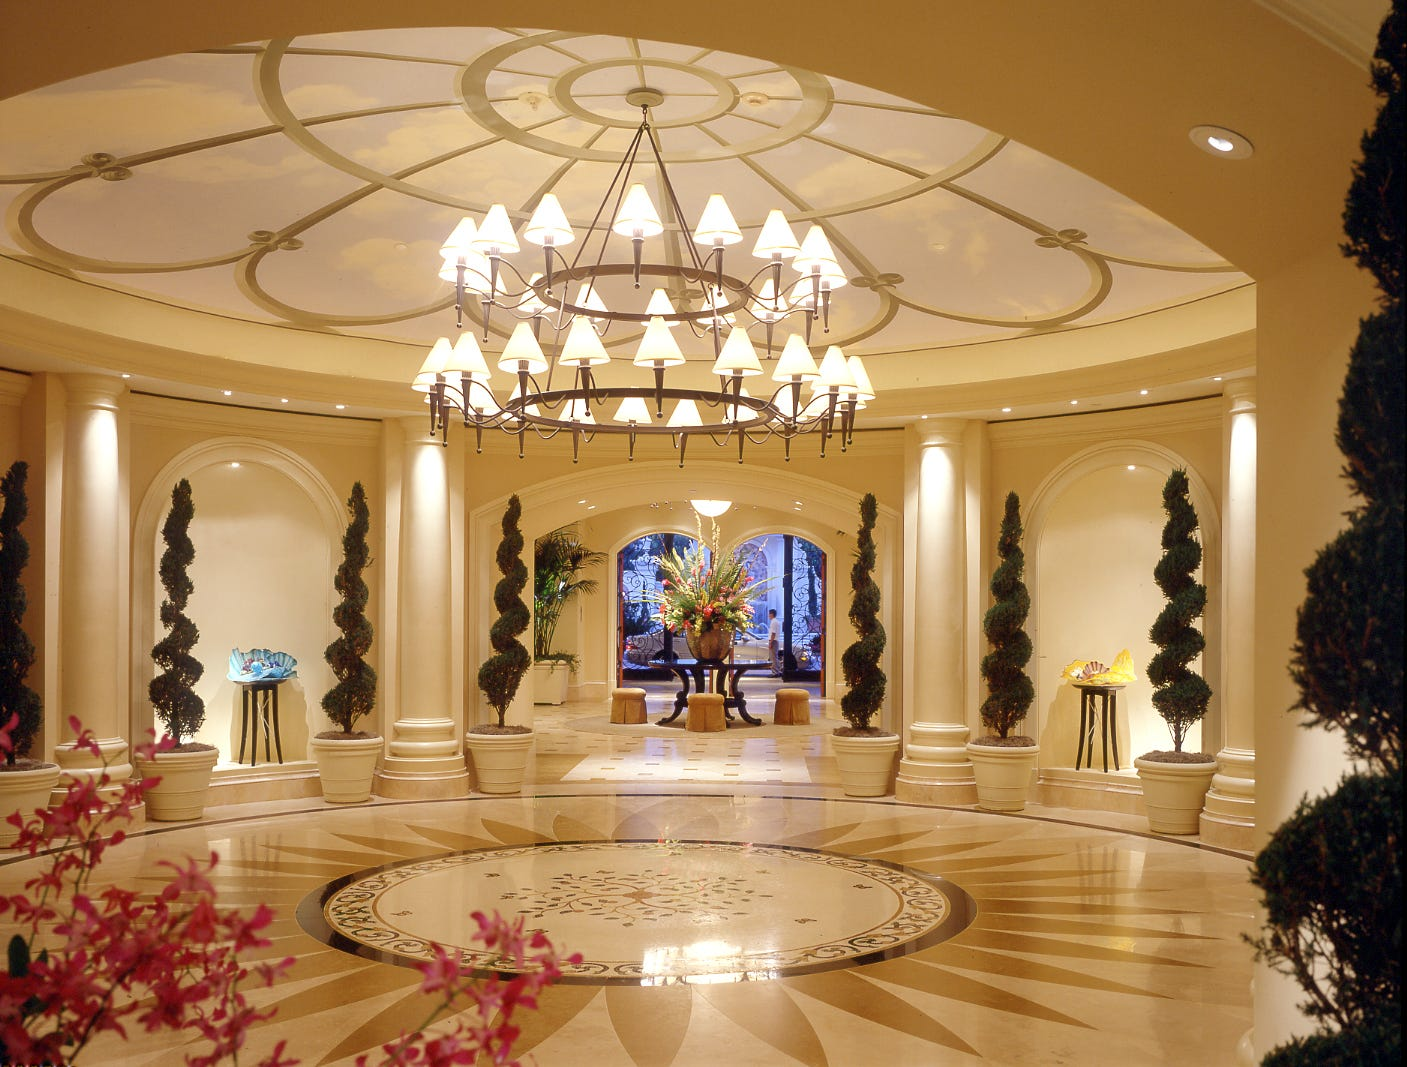 The Rotunda Lobby of the St. Regis Monarch Beach Resort in Dana Point, Calif., has clean lines and natural accents.